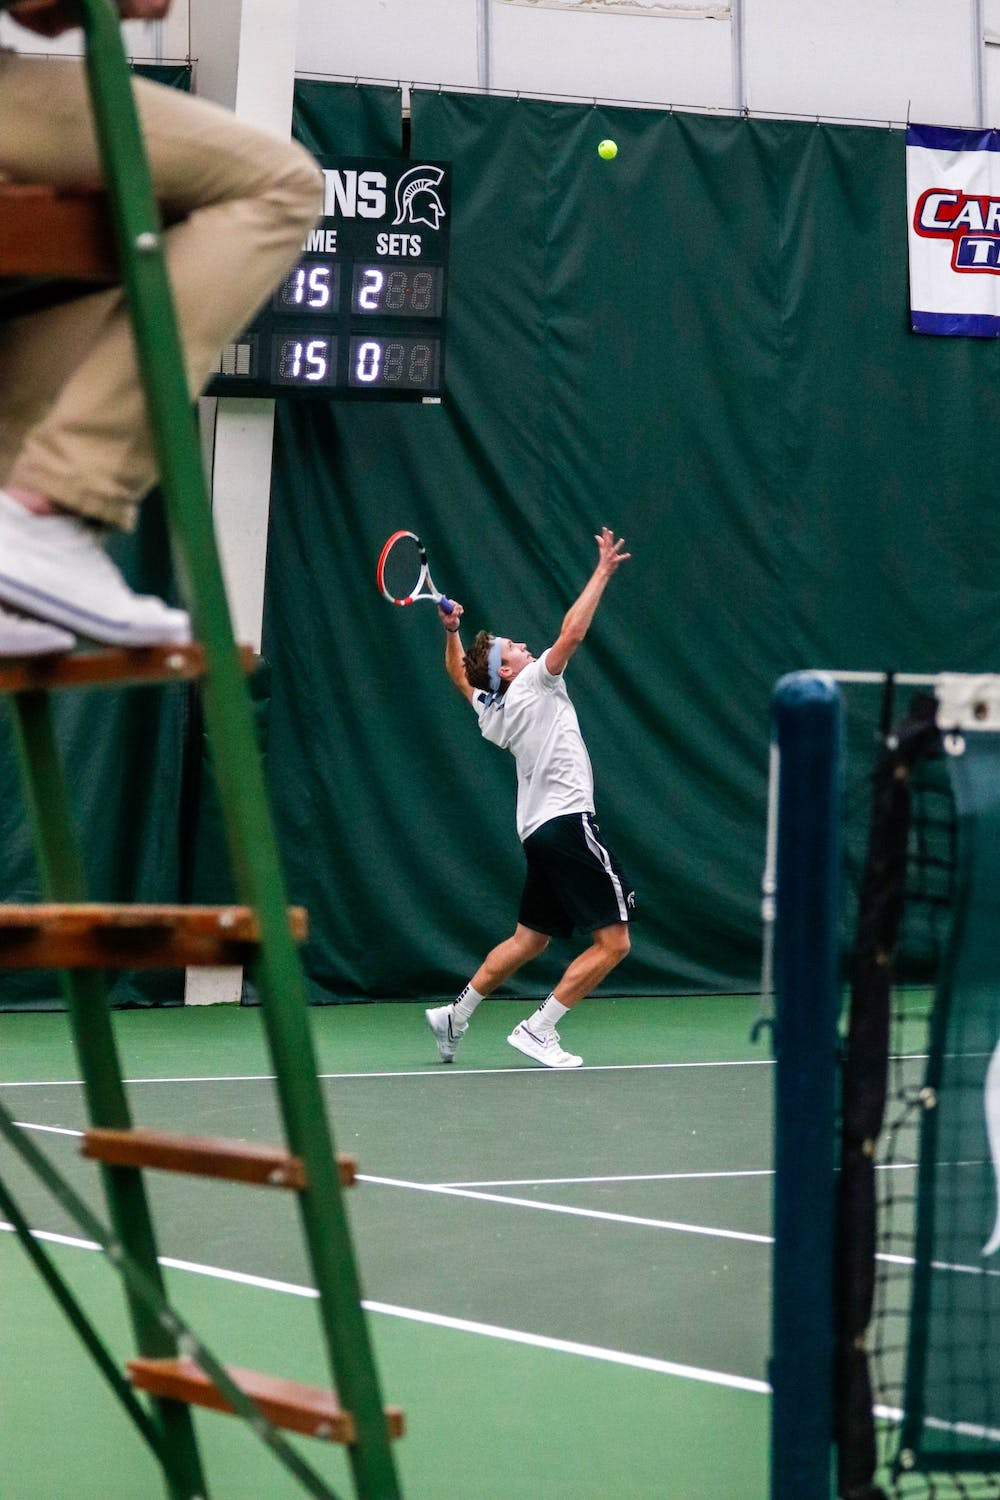 <p>Freshman Drew Keene serves during a doubles match against Niagara at the MSU Tennis Center Jan. 25, 2020. The Spartans defeated the Purple Eagles, 7-0.</p>